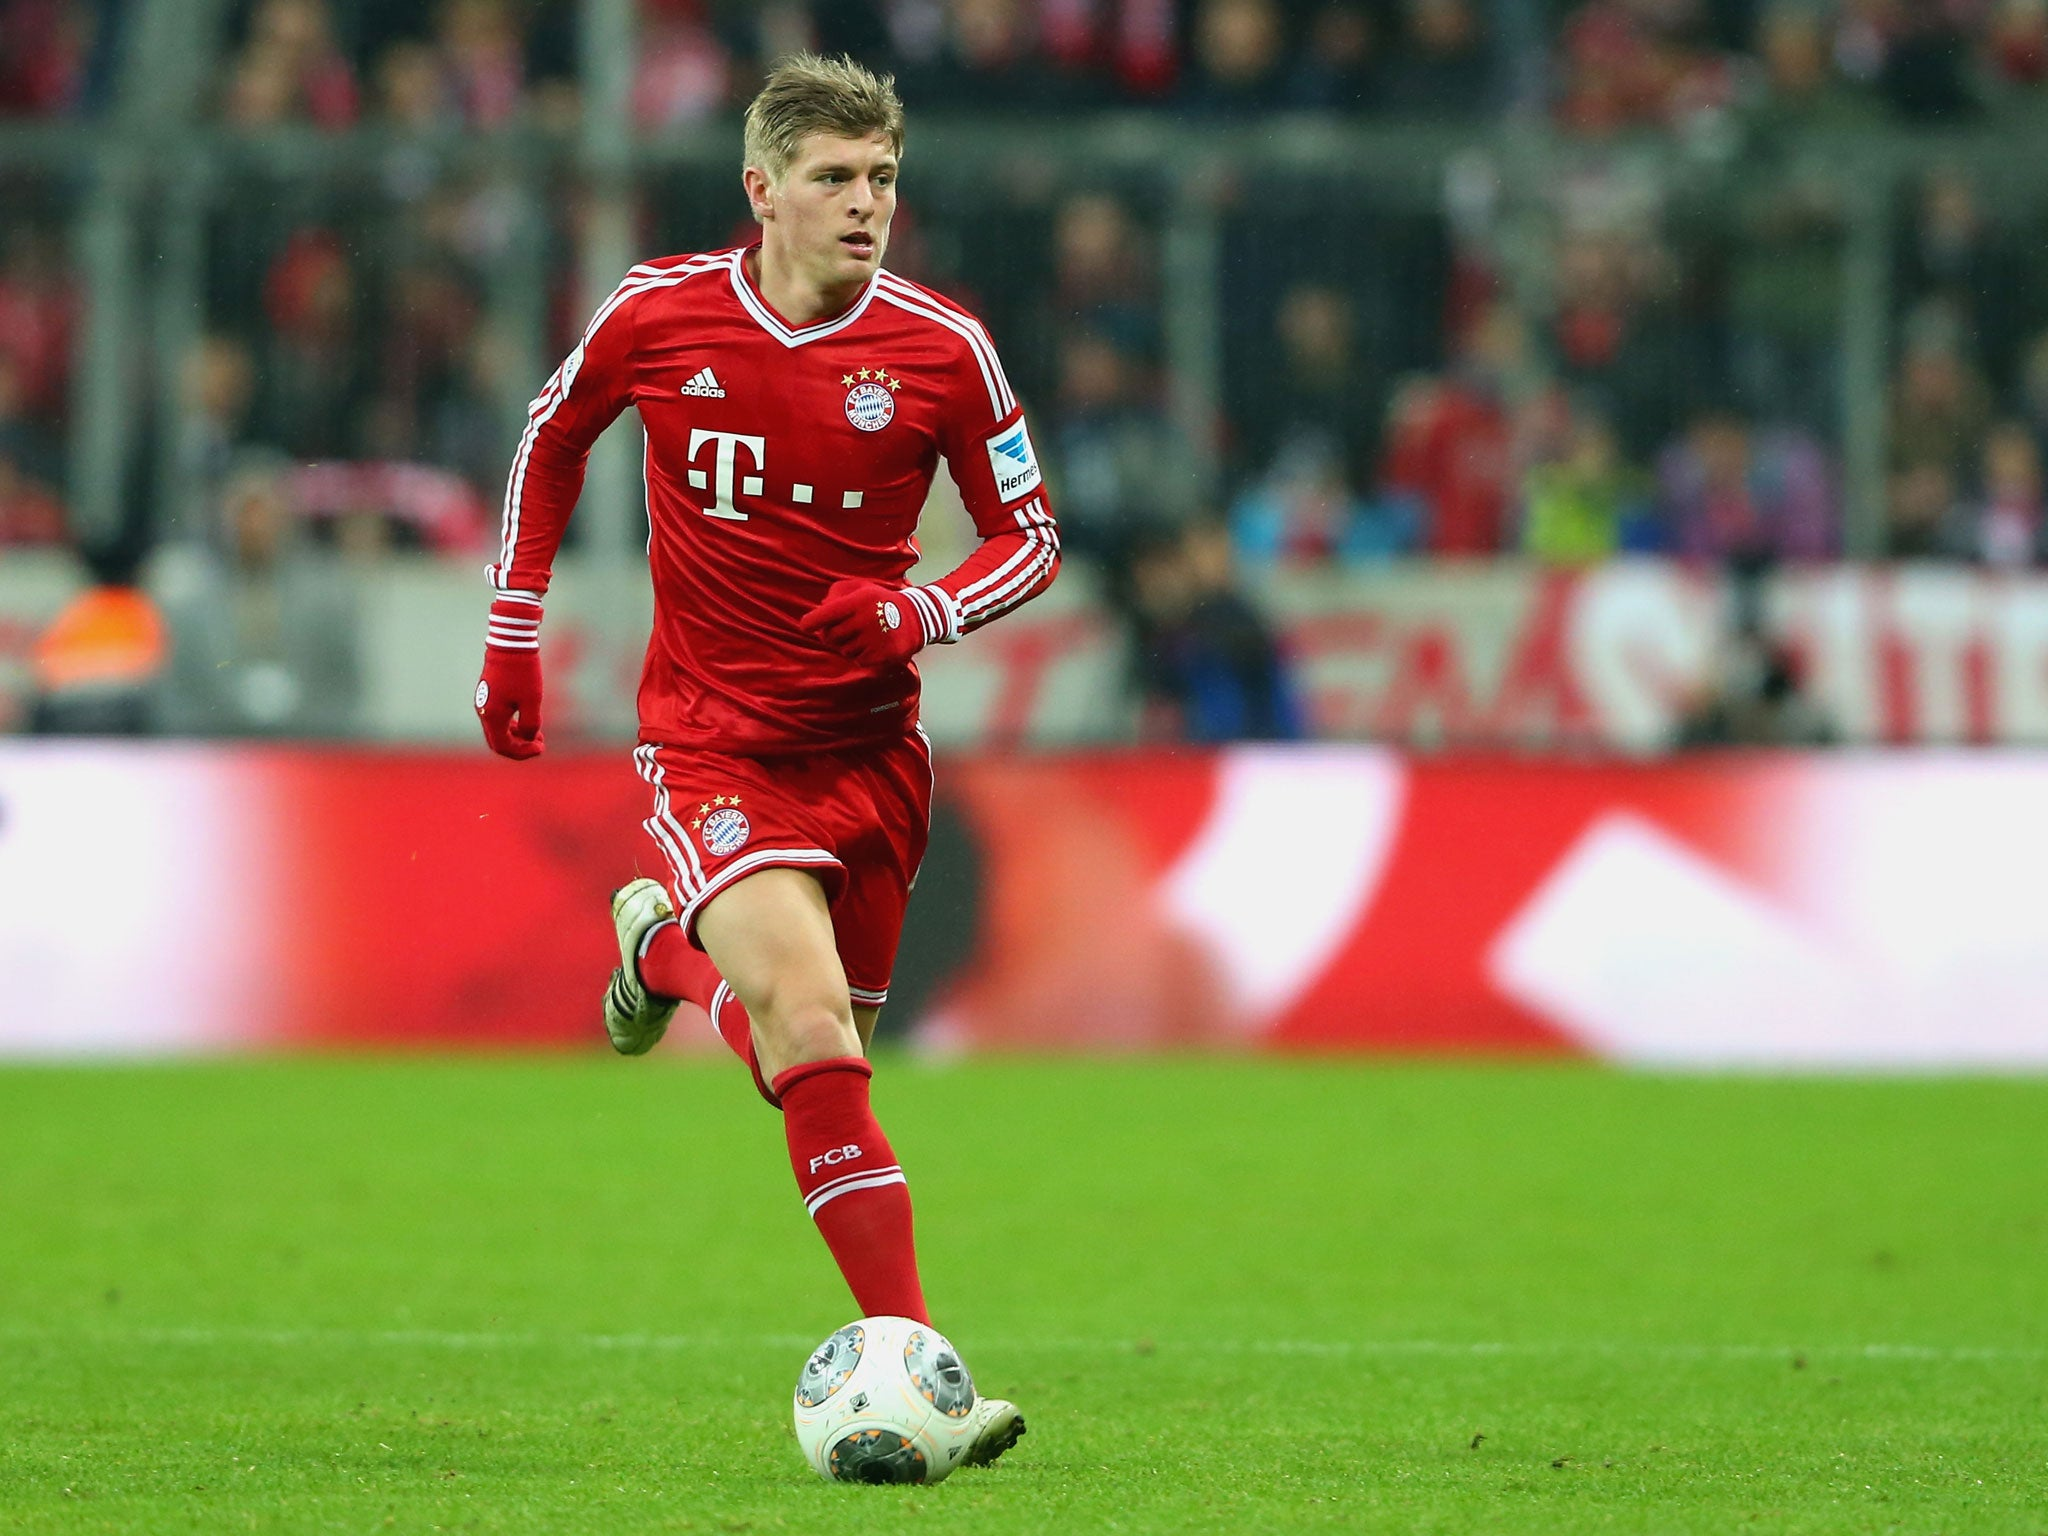 Toni Kroos will join Real Madrid after World Cup for £19 9m